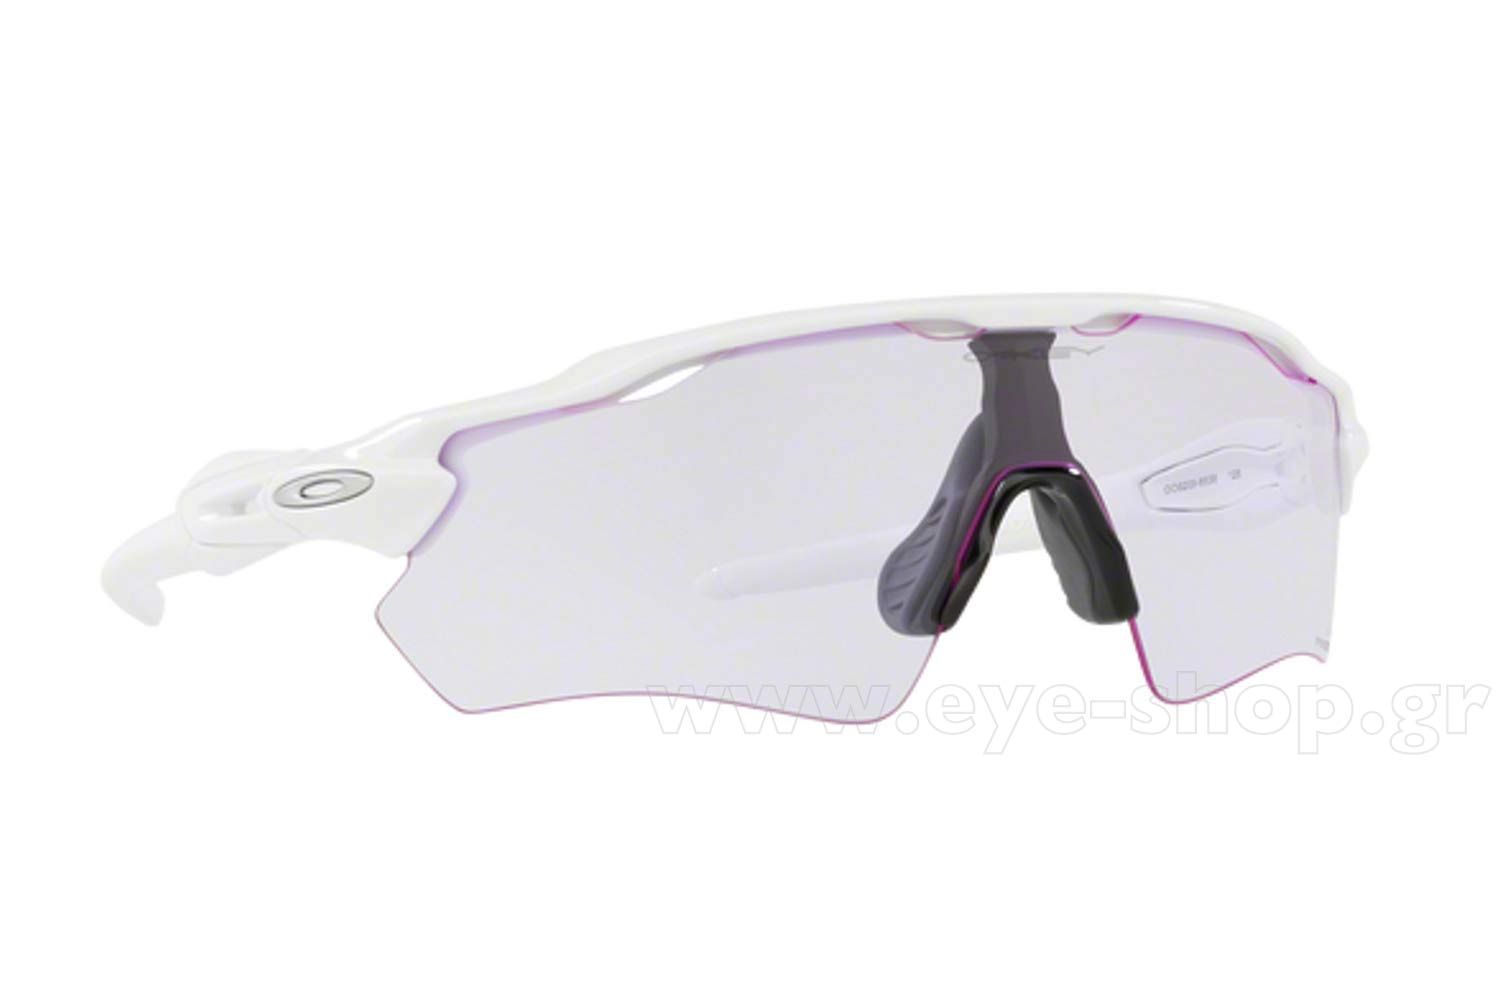 c760c9e1dc Oakley RADAR EV PATH 9208 65 Prizm low light